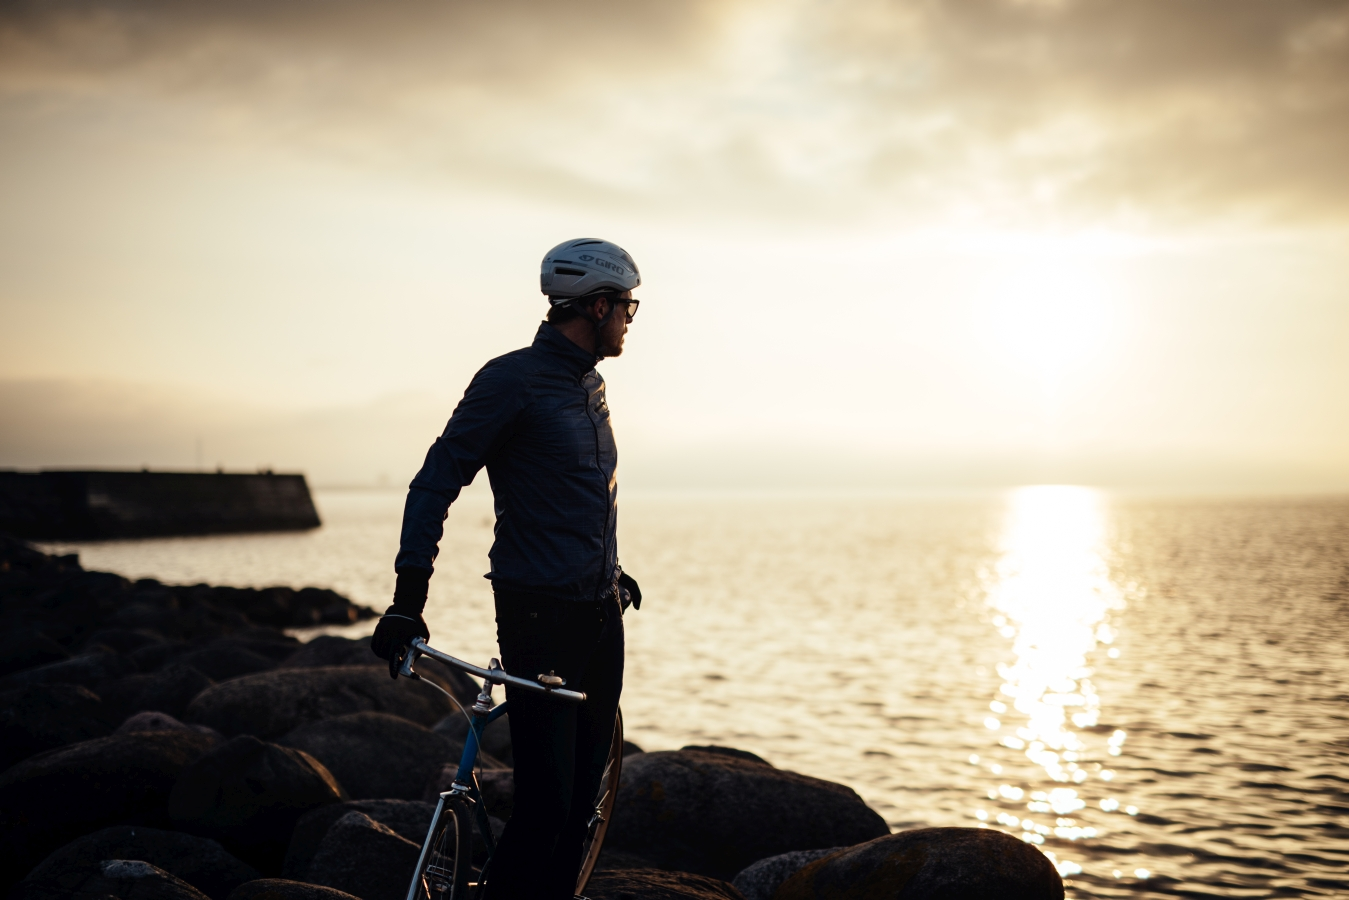 Craft Active Extreme cycling clothing